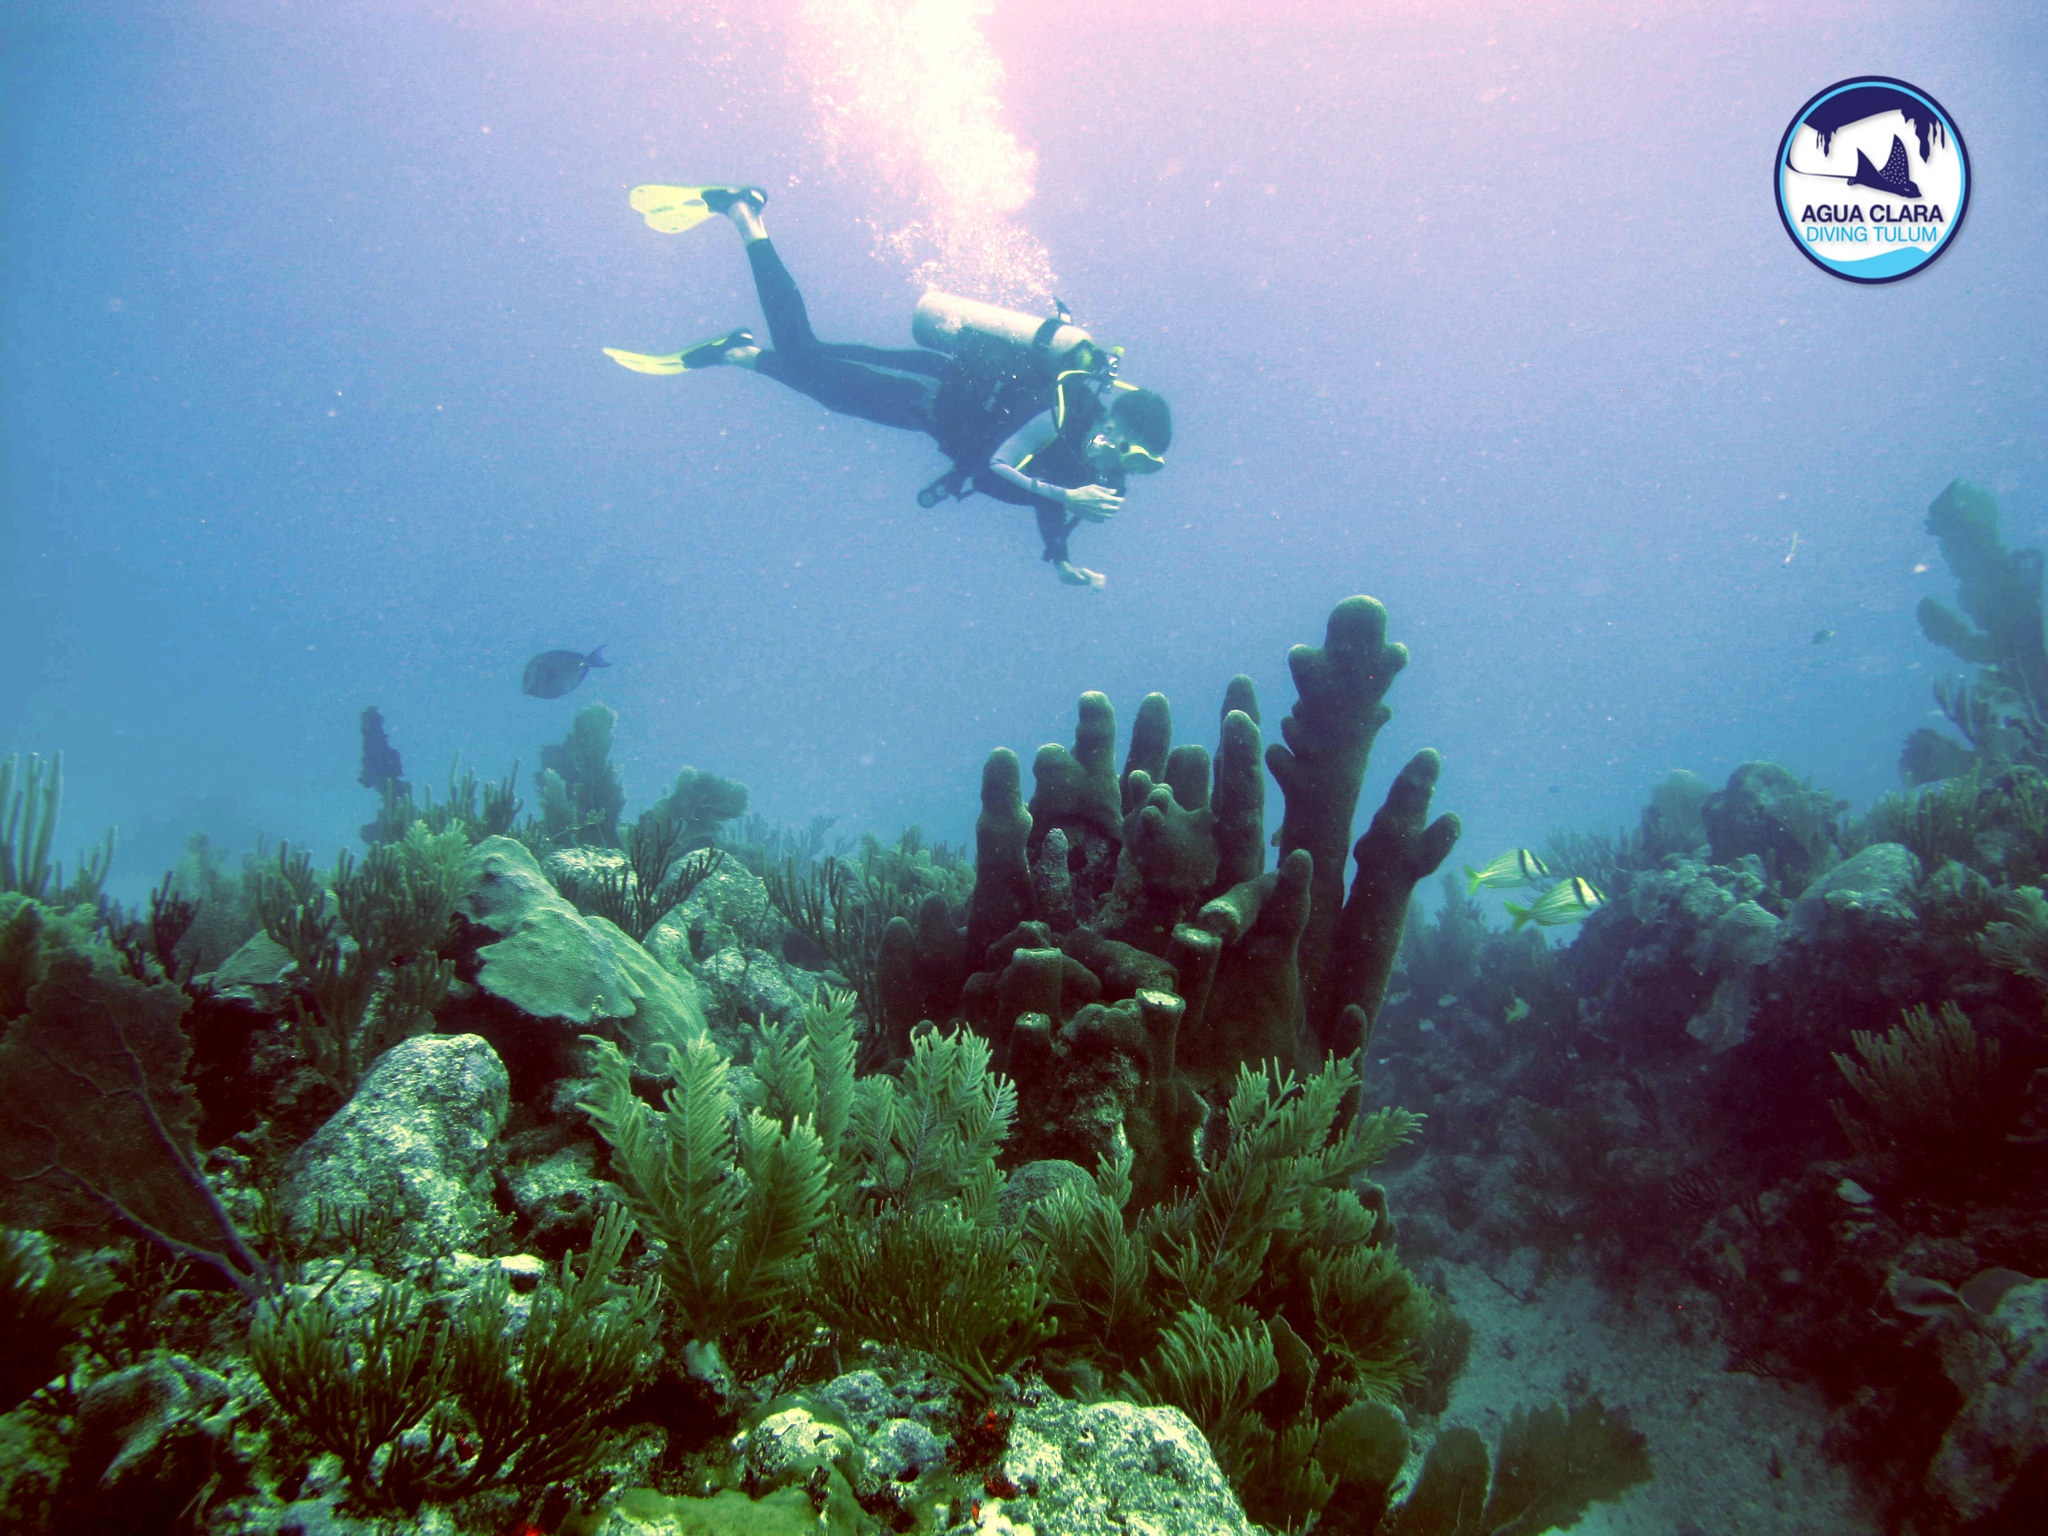 diving tulum's coral reef - diving tulum tours by agua clara - expolore the reef of the mayan riviera